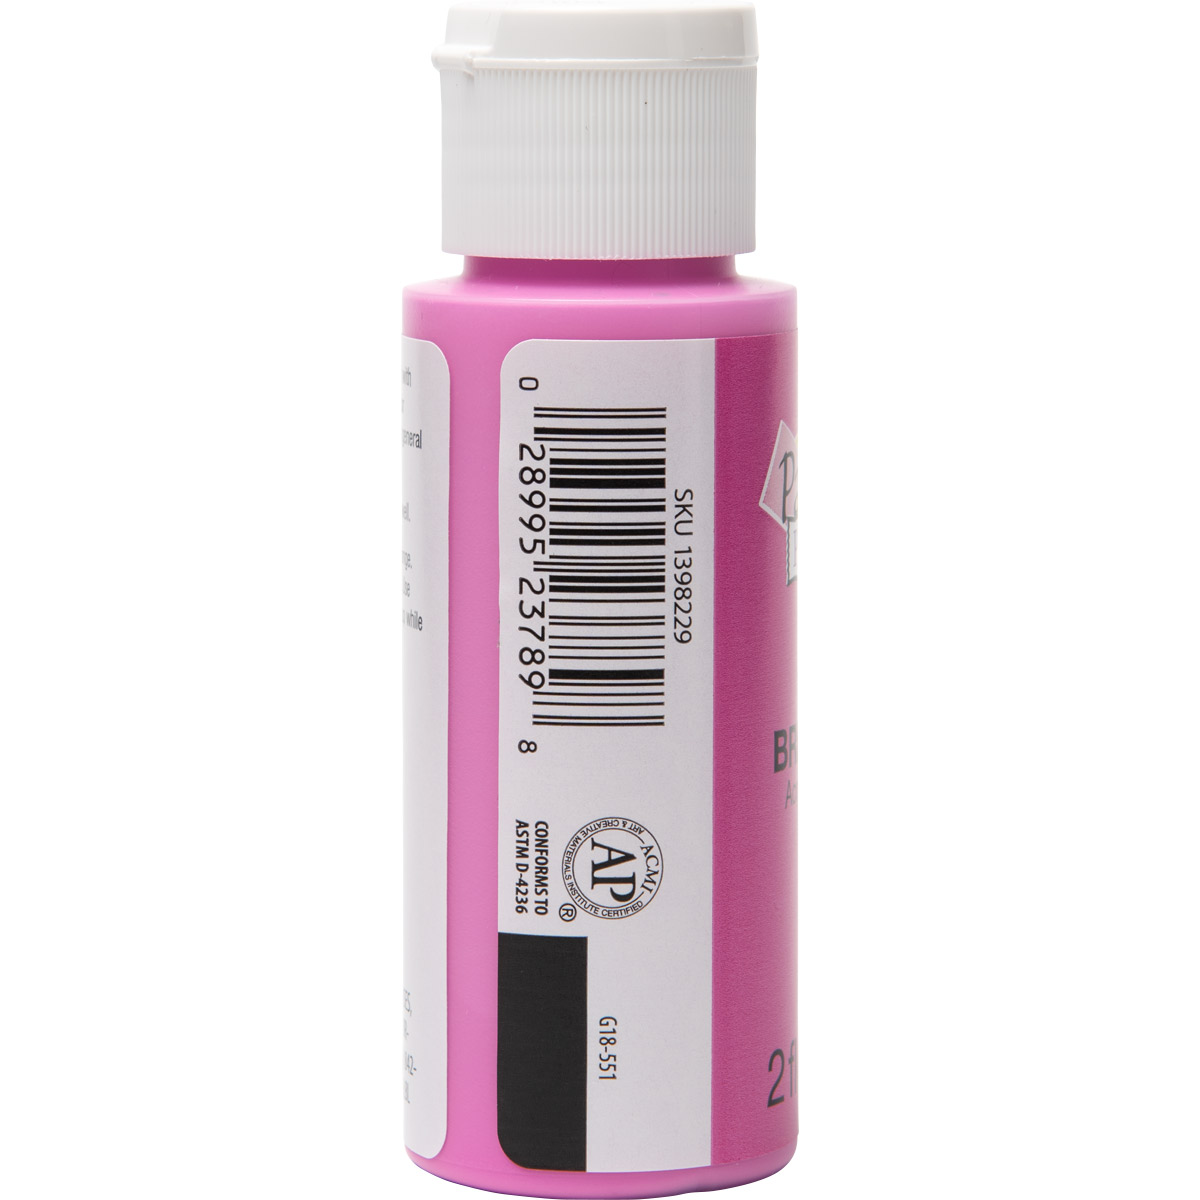 Plaid ® Painter's Palette™ Acrylic Paint - Bright Pink, 2 oz. - 23789